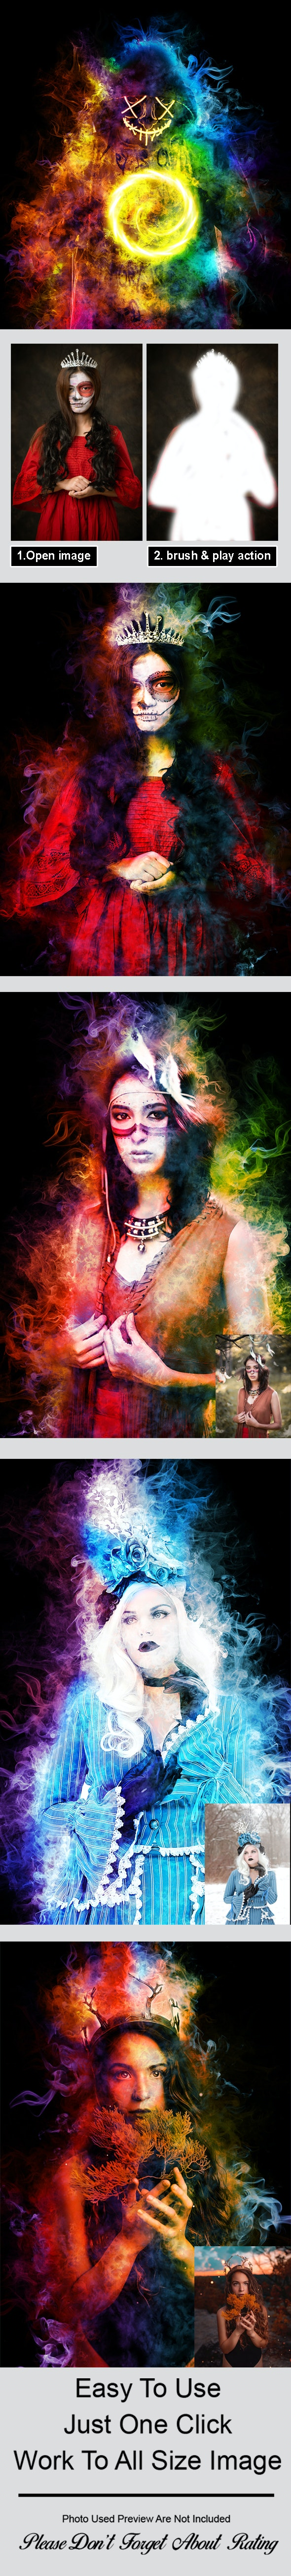 Amazing Colored Smoke Photoshop Action Vol 2 - Photo Effects Actions